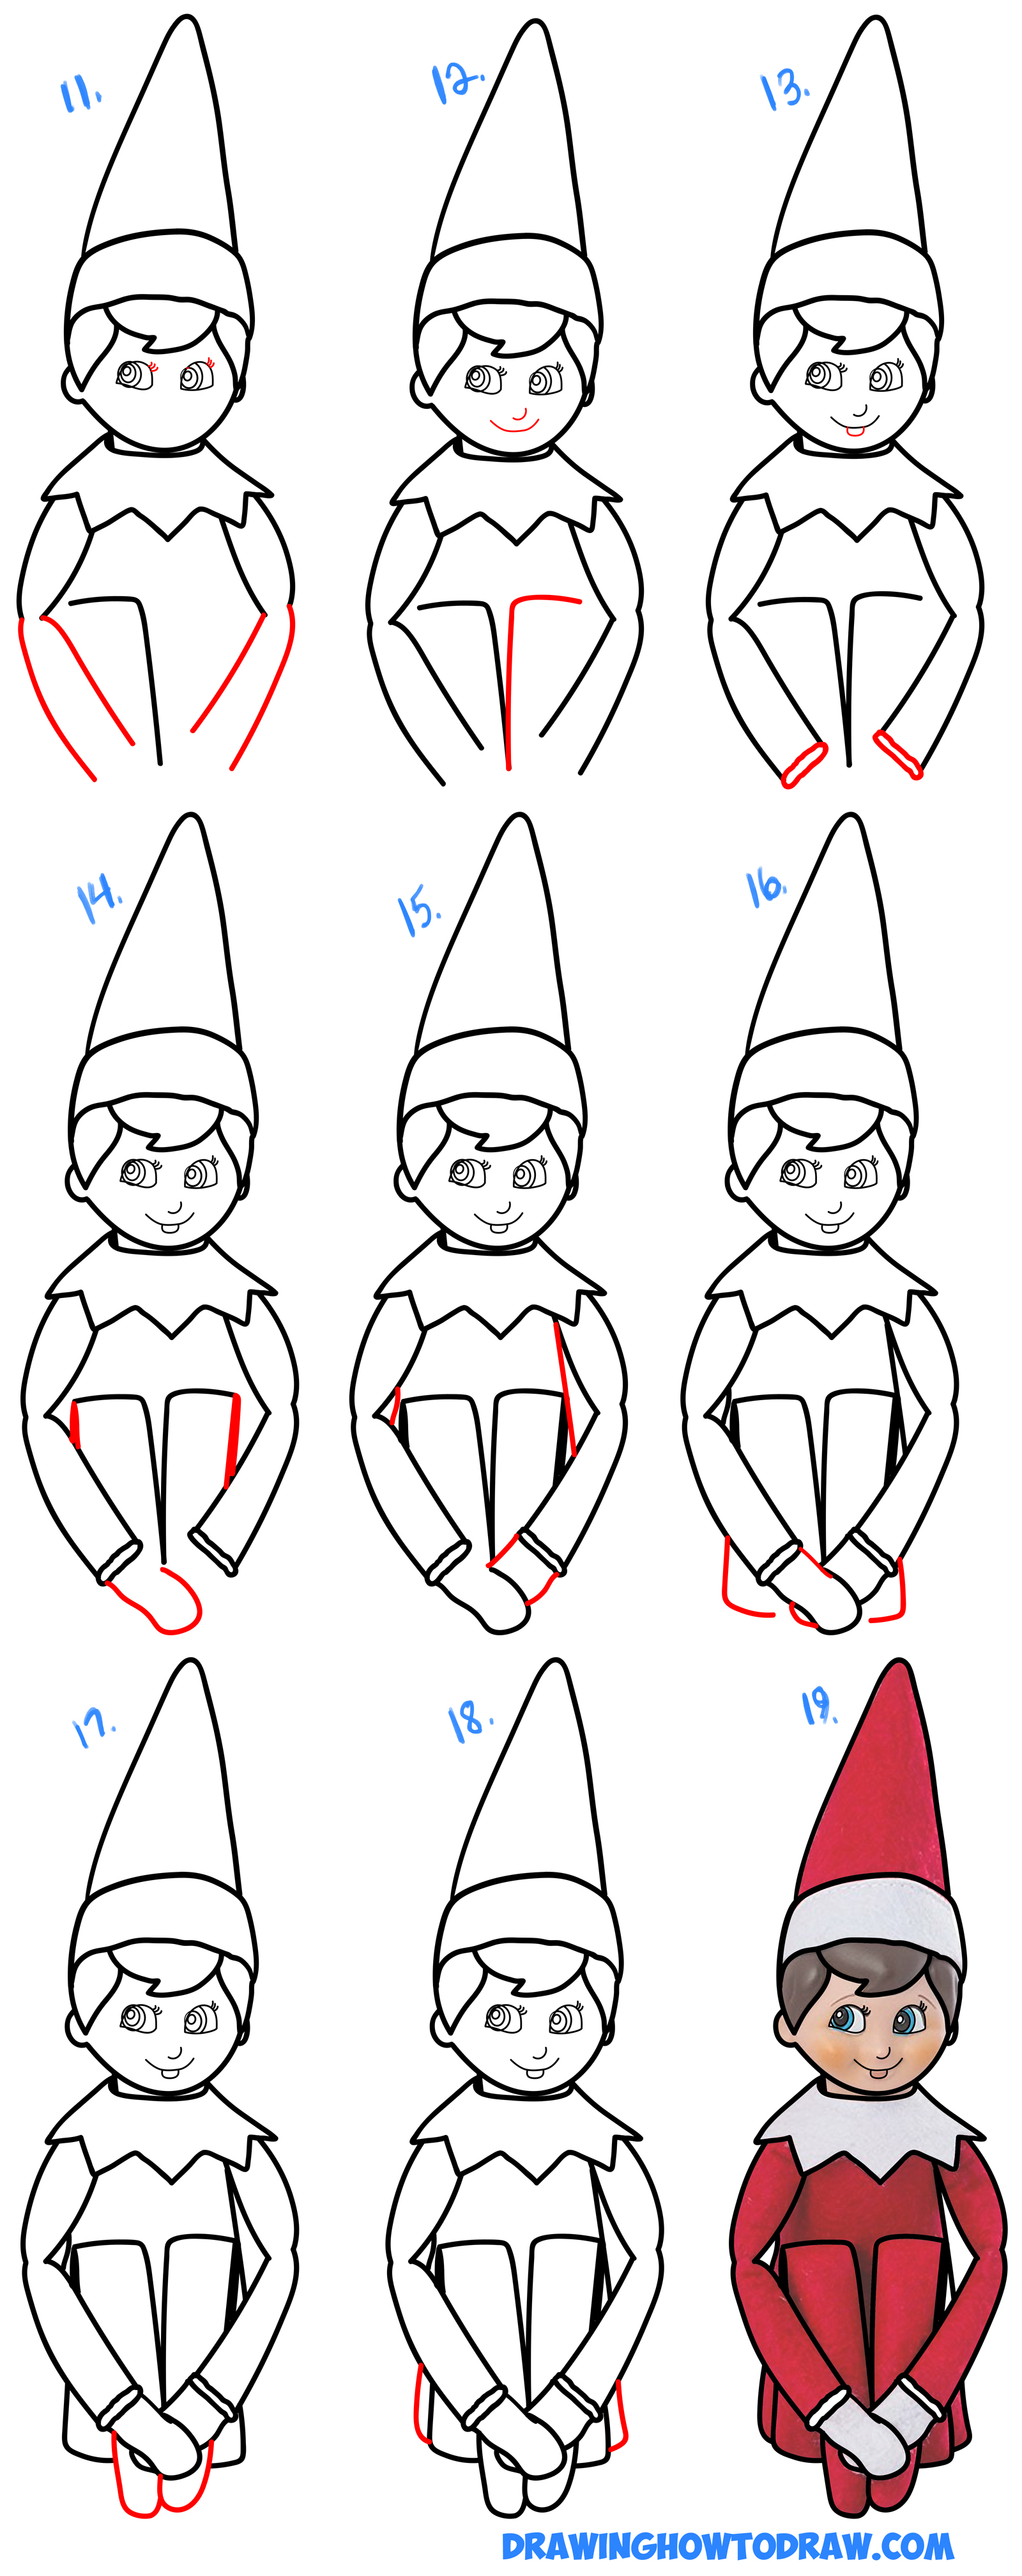 1600x4031 How To Draw The Elf On The Shelf Easy Step By Step Drawing